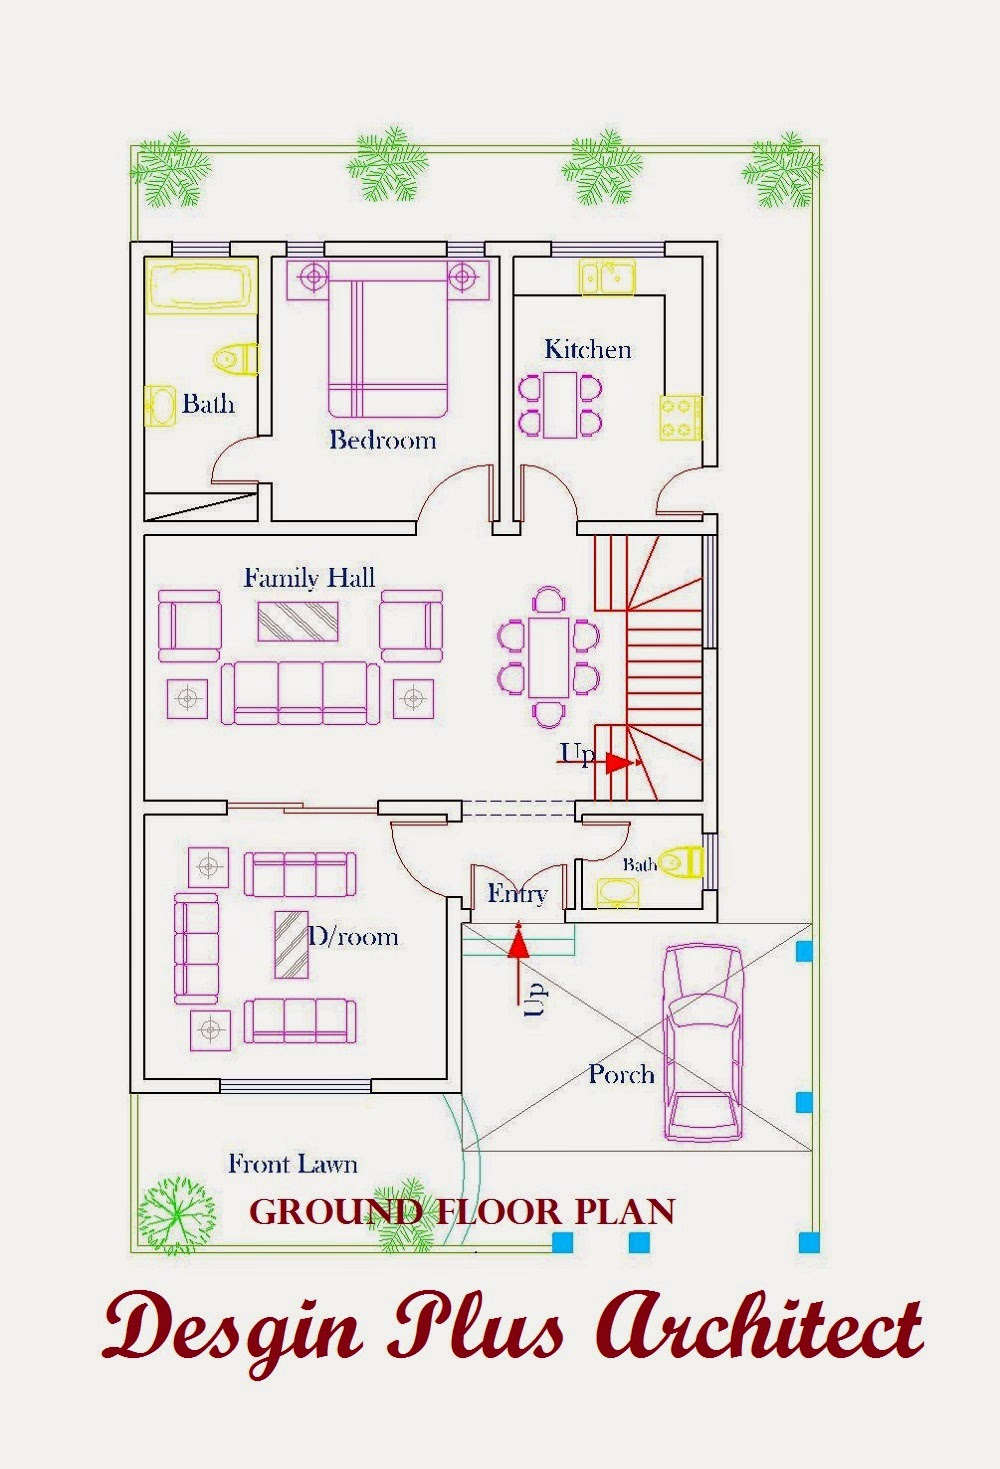 Home plans in pakistan home decor architect designer for Home house plans